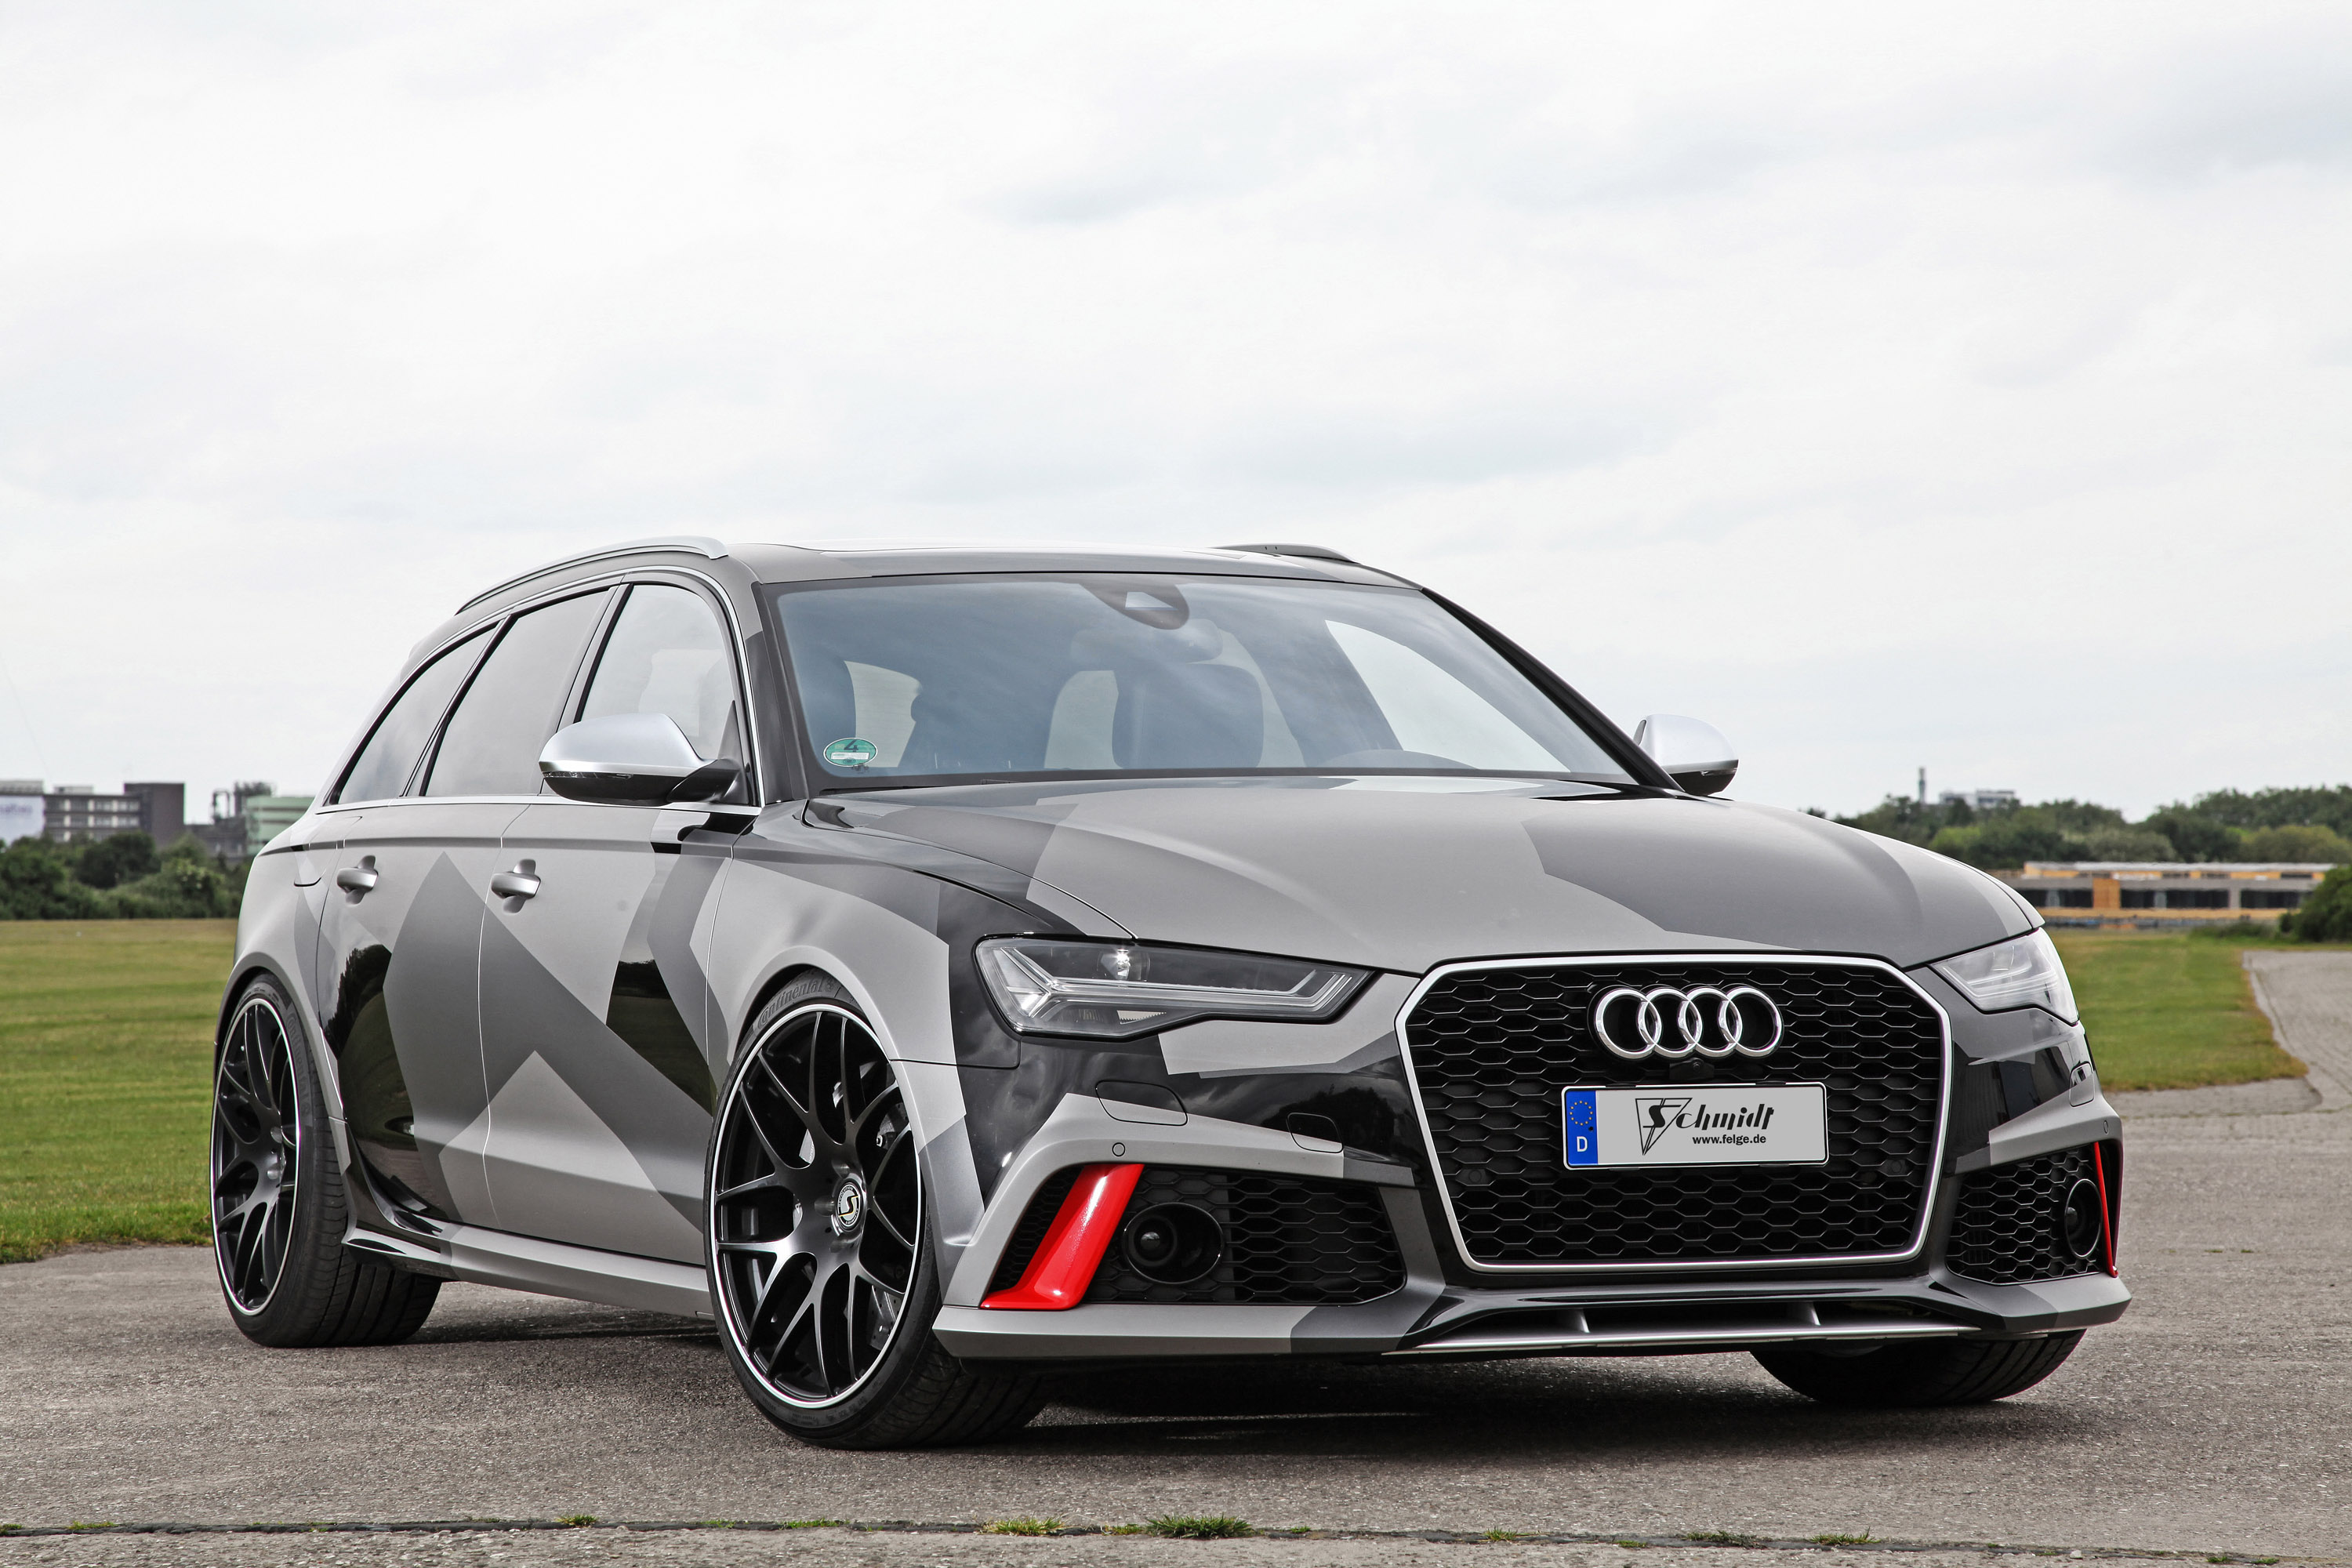 audi rs6 avant received visual and performance upgrades by schmidt revolution team. Black Bedroom Furniture Sets. Home Design Ideas